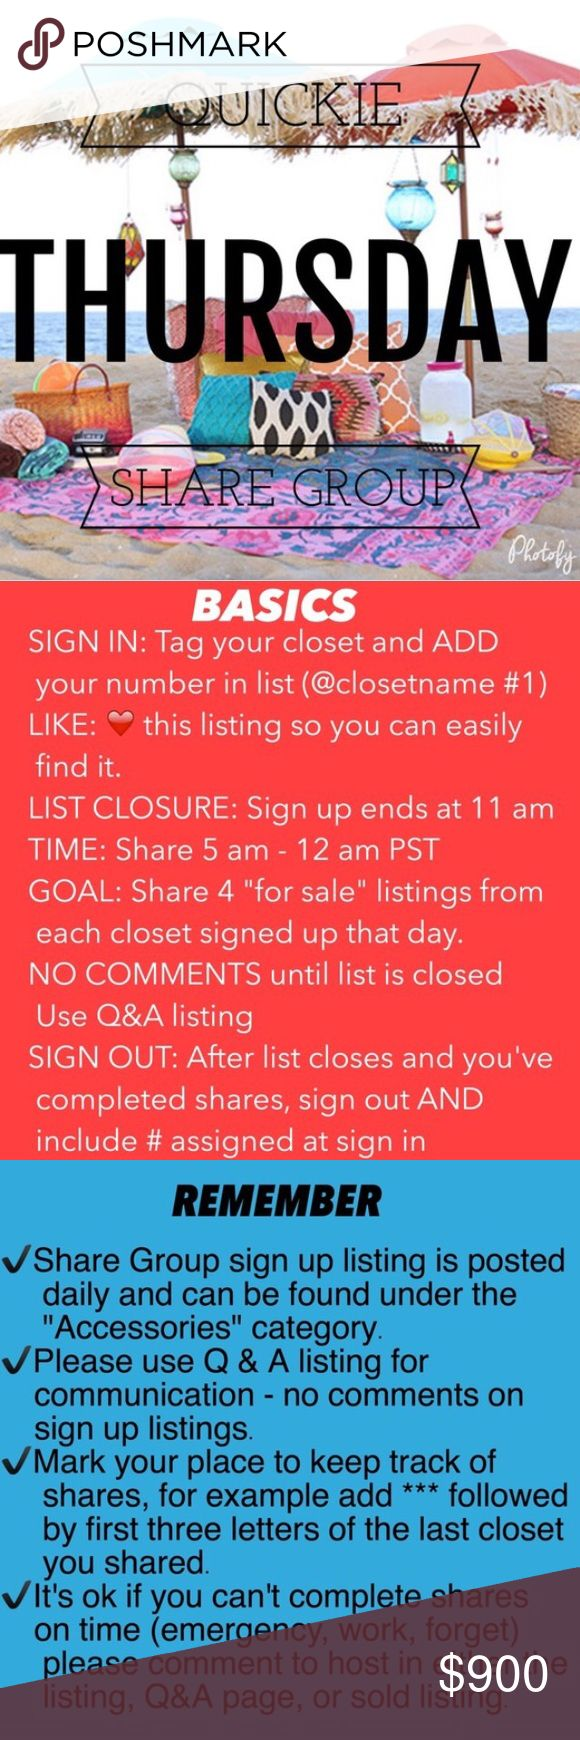 Thursday Quickie share group 10/13 ❤️Share 4 items from each closet  ❤️Share times 9am to 12midnight ❤️Sign up closes at noon Pacific (3ET)  ❤️Share before midnight your time!               ❤️Let's have fun sharing!                      If you have any questions please tag me @deesteinberg                                                  ❤️ ❤️Thank you for joining us today! Accessories